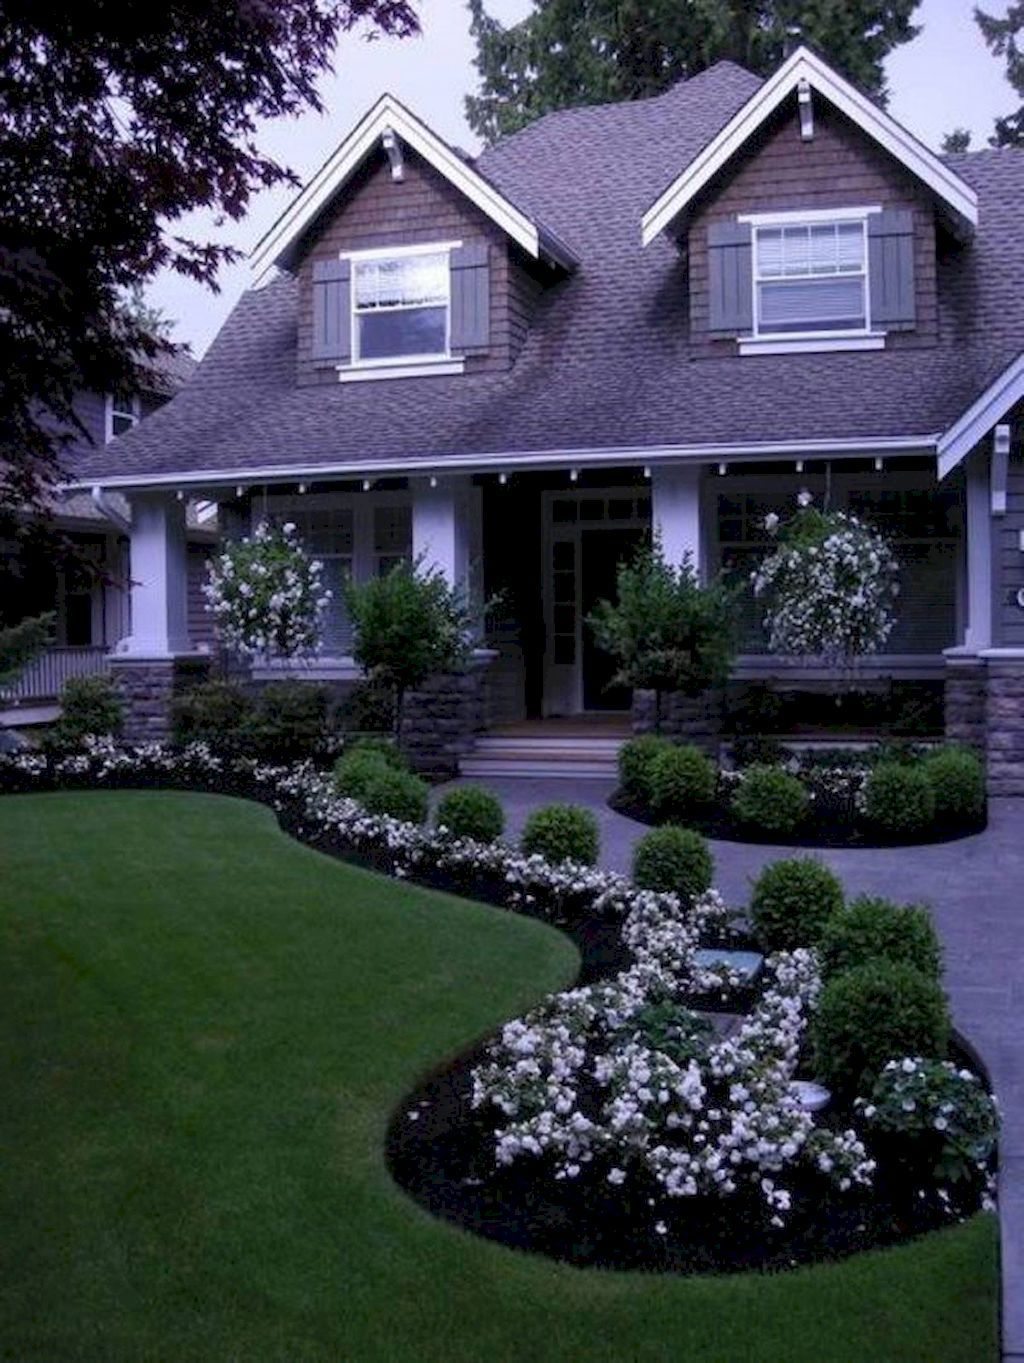 40 beautiful front yard landscaping ideas yard for Garden design ideas for front of house